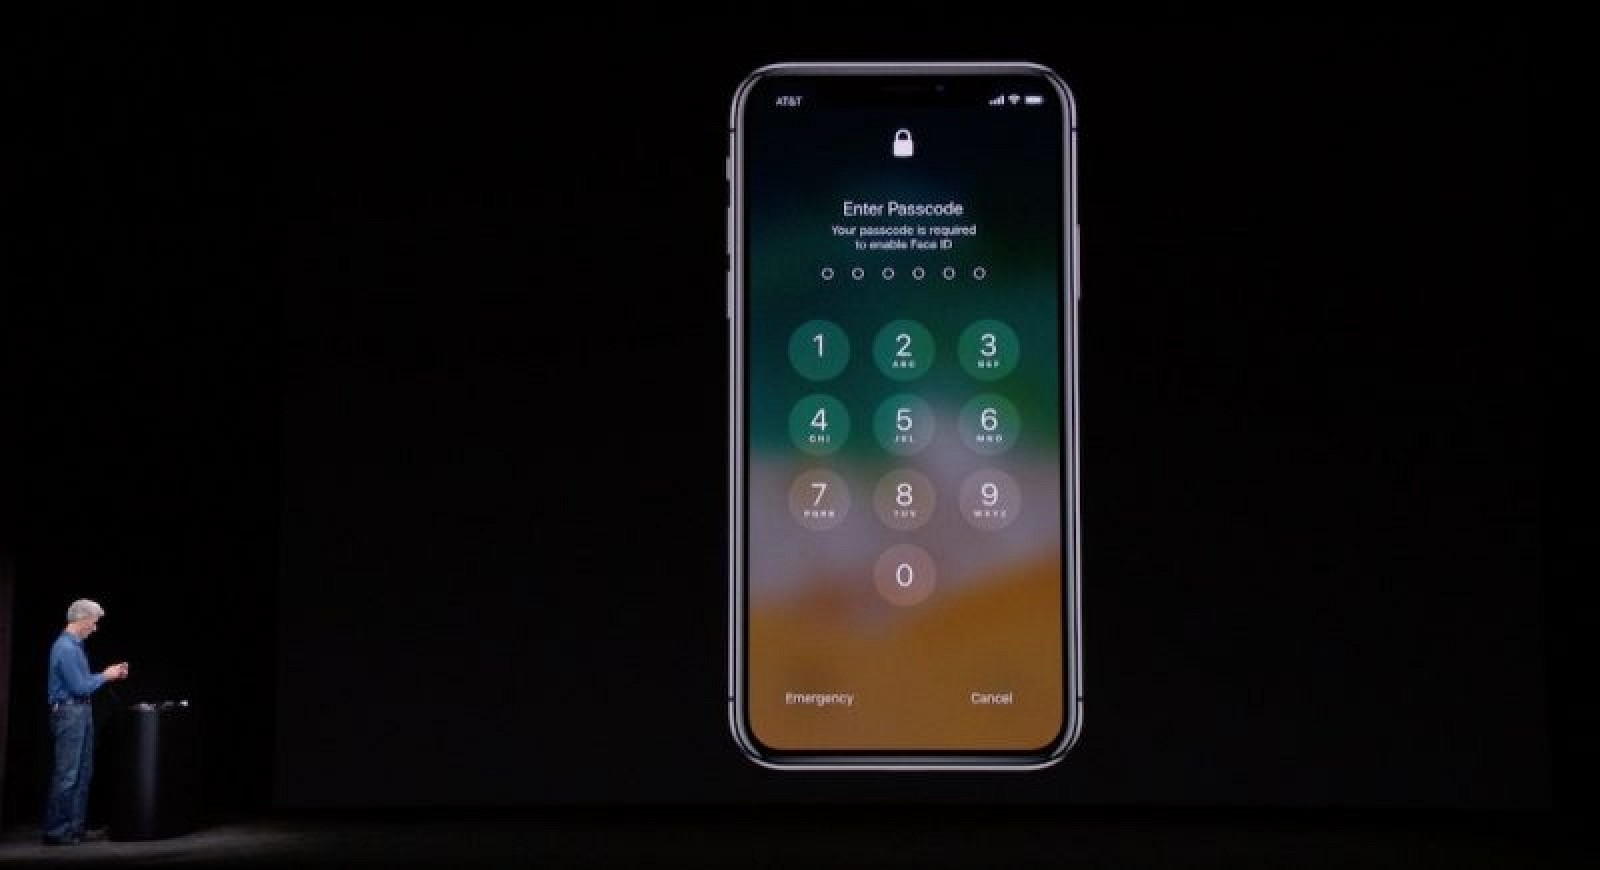 photo image Doubts and Speculation Surround Apple's Onstage Face ID 'Fail' During iPhone X Keynote